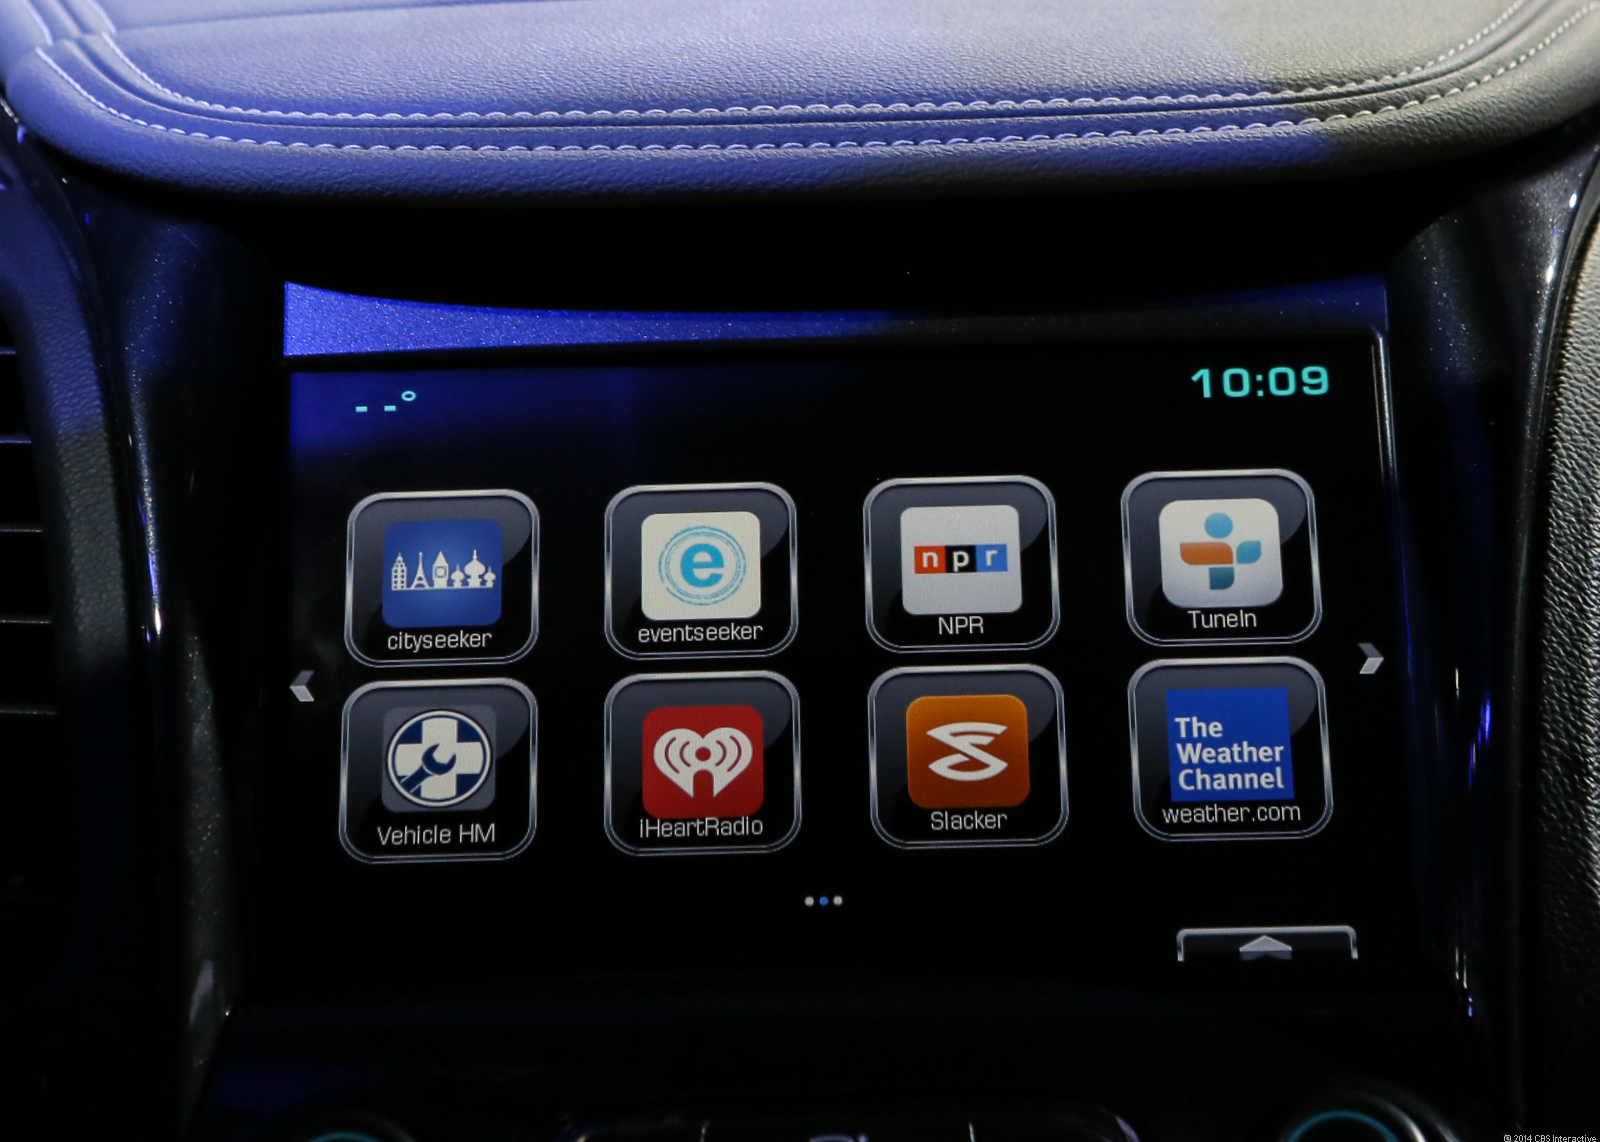 GM demonstrated the new App Shop, an app platform to be launched in Chevrolet vehicles equipped with the MyLink infortainment system. Just like a smartphone, a Chevy owner will be able to browse a number of apps, and choose which to install.